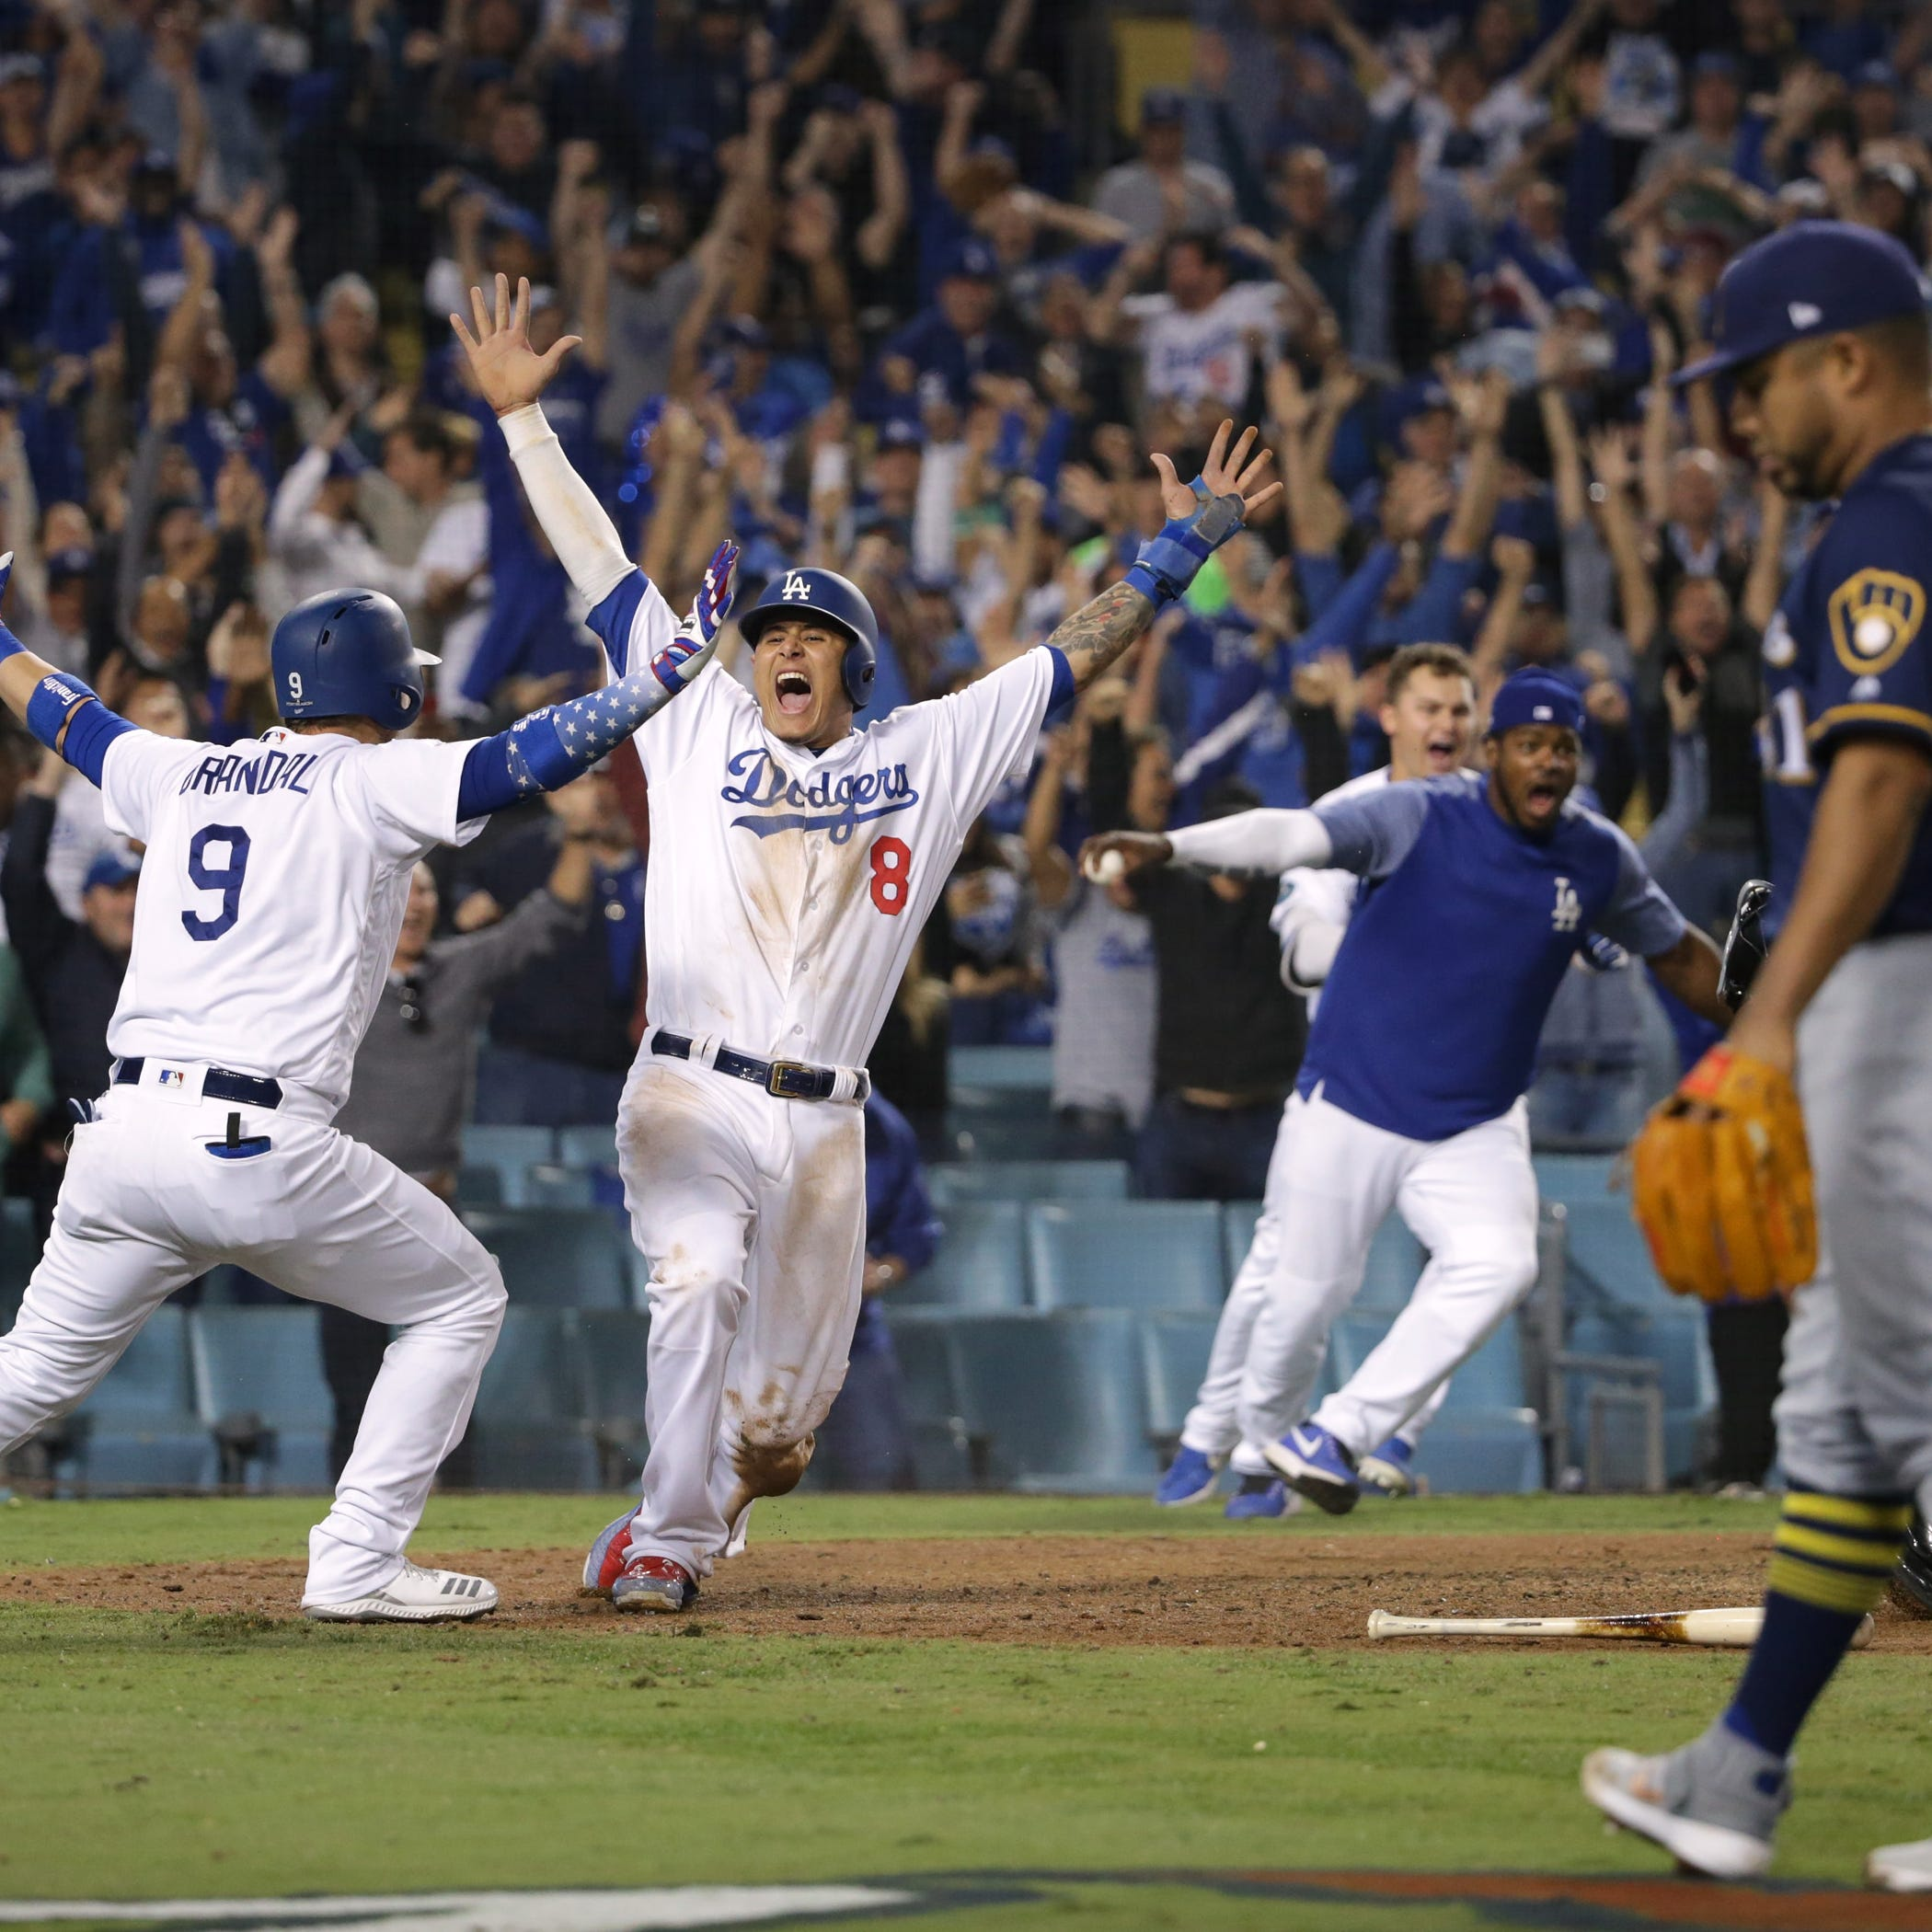 Dodgers 2, Brewers 1 (13 innings): NLCS tied after Game 4 marathon